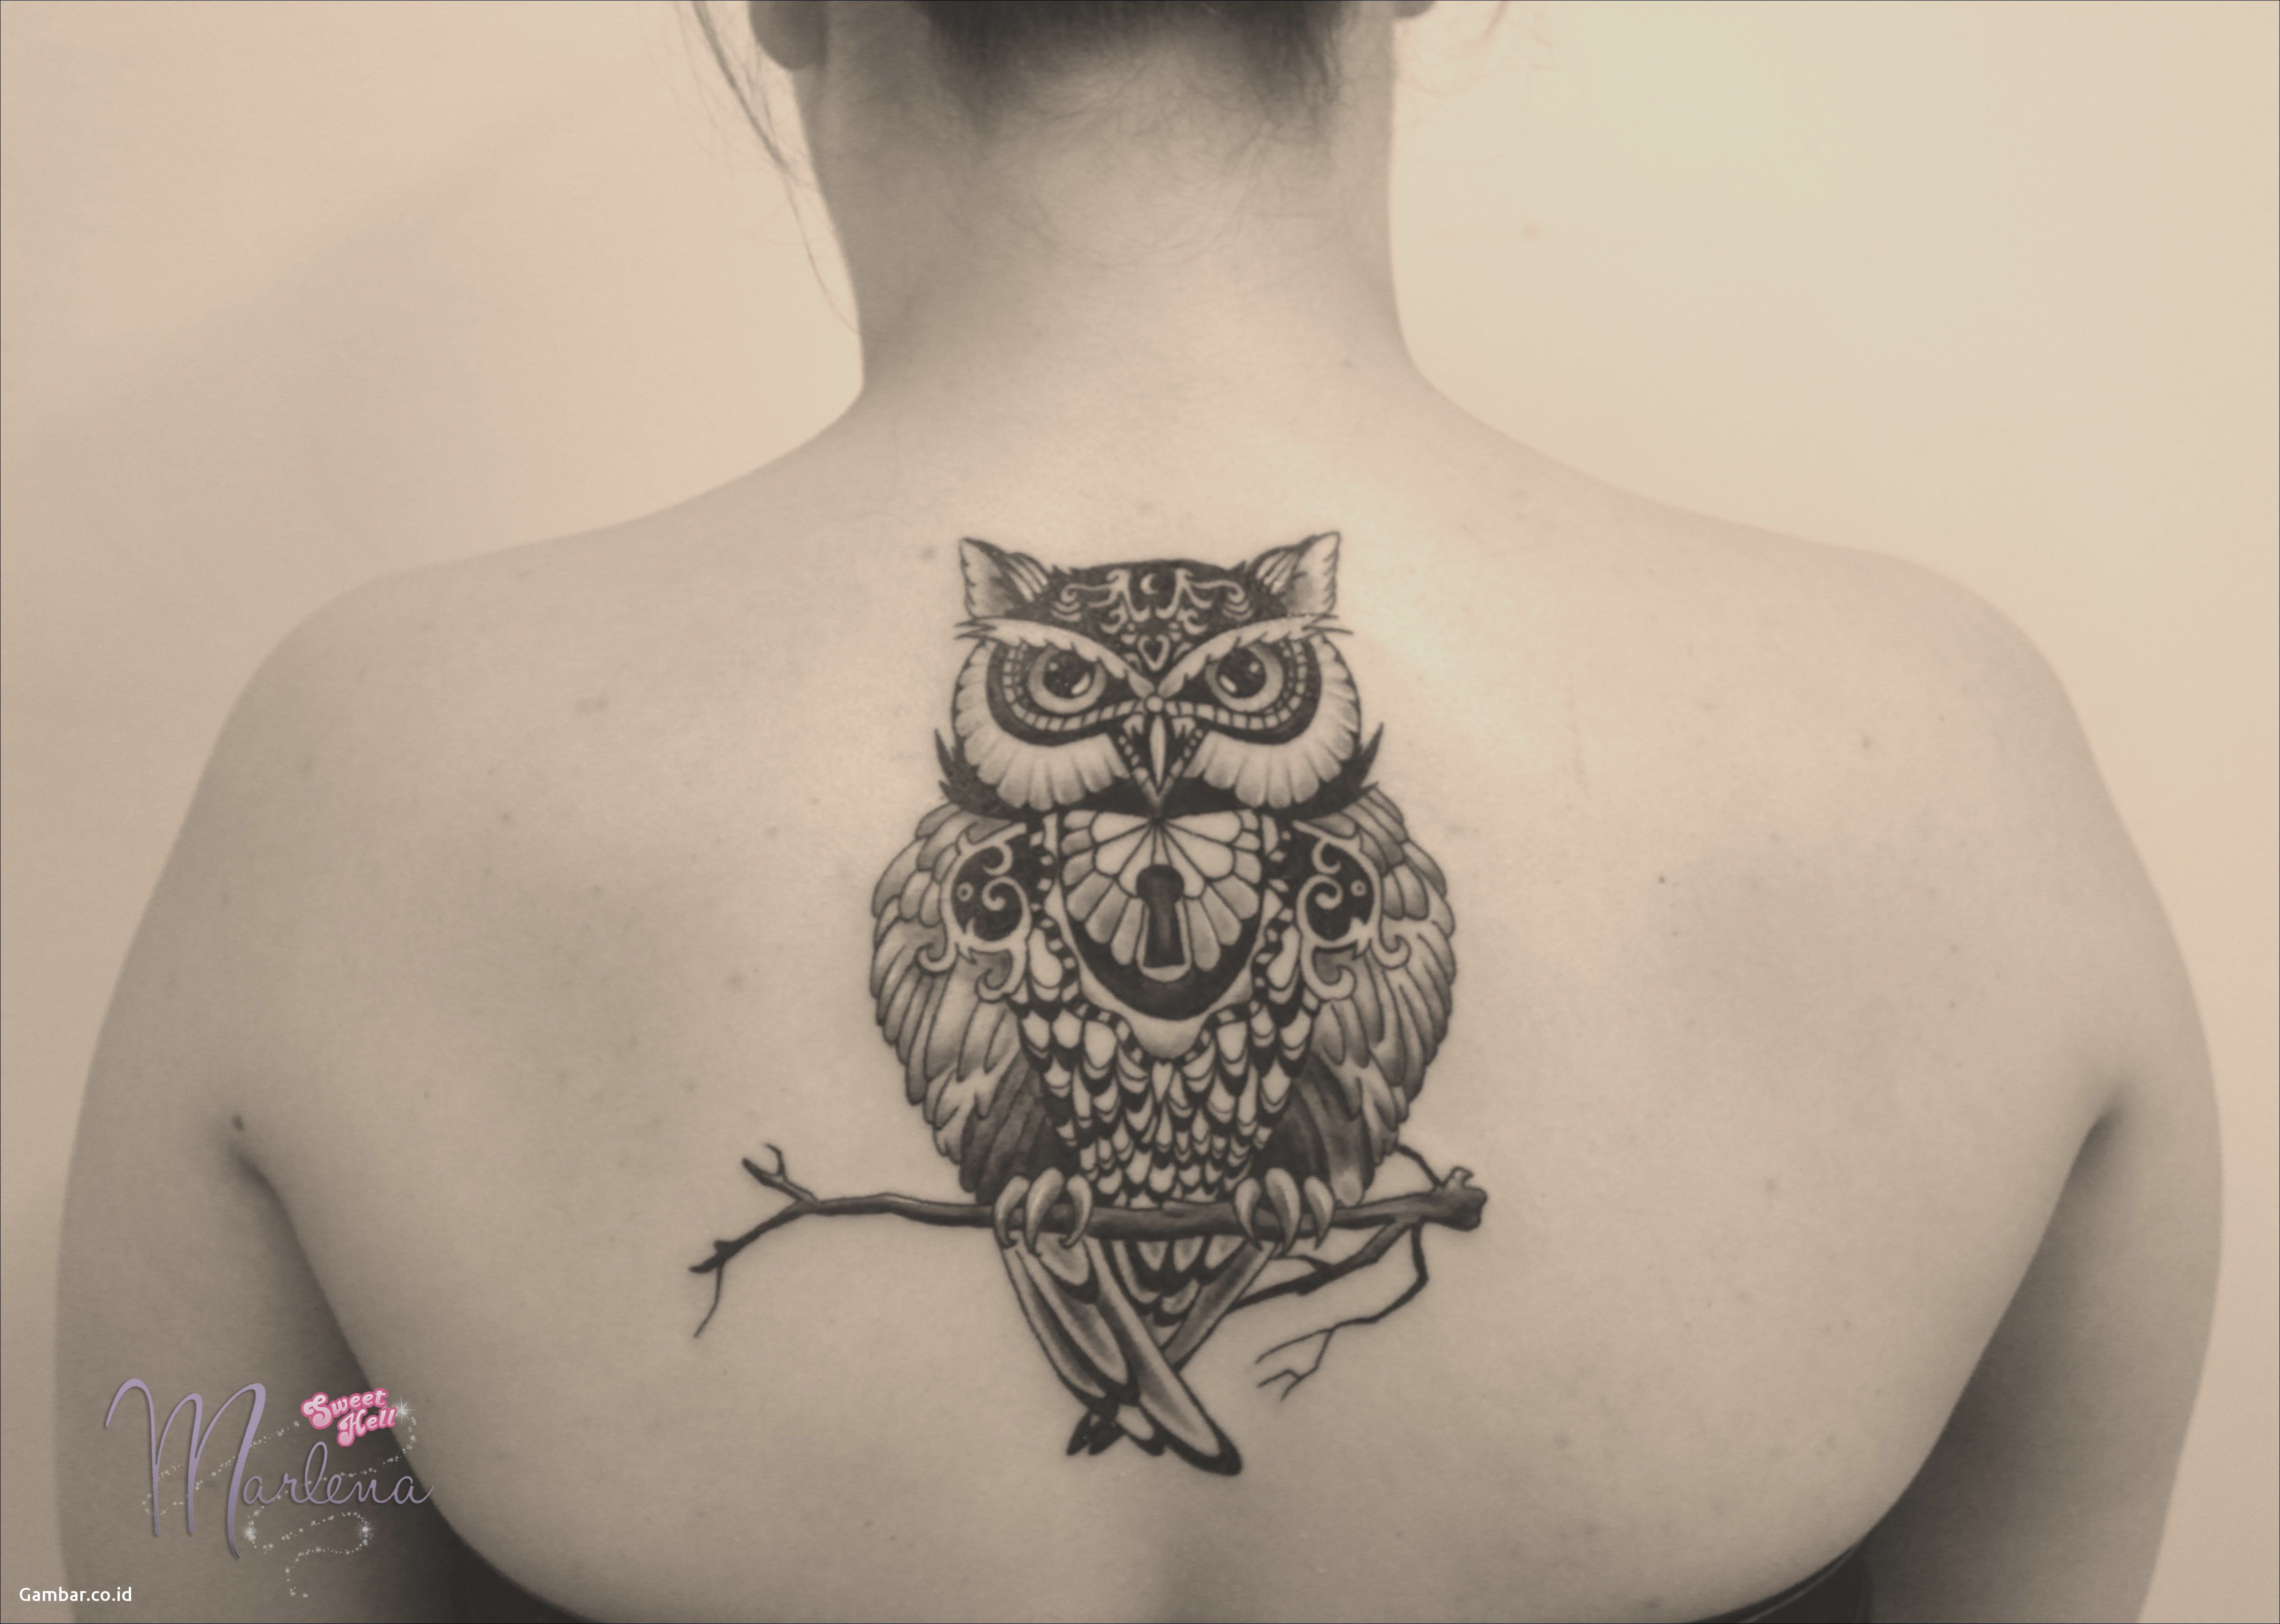 Download Gambar Owl Tattoo On A Back Between Shoulder Blades Black inside dimensions 4852 X 3456